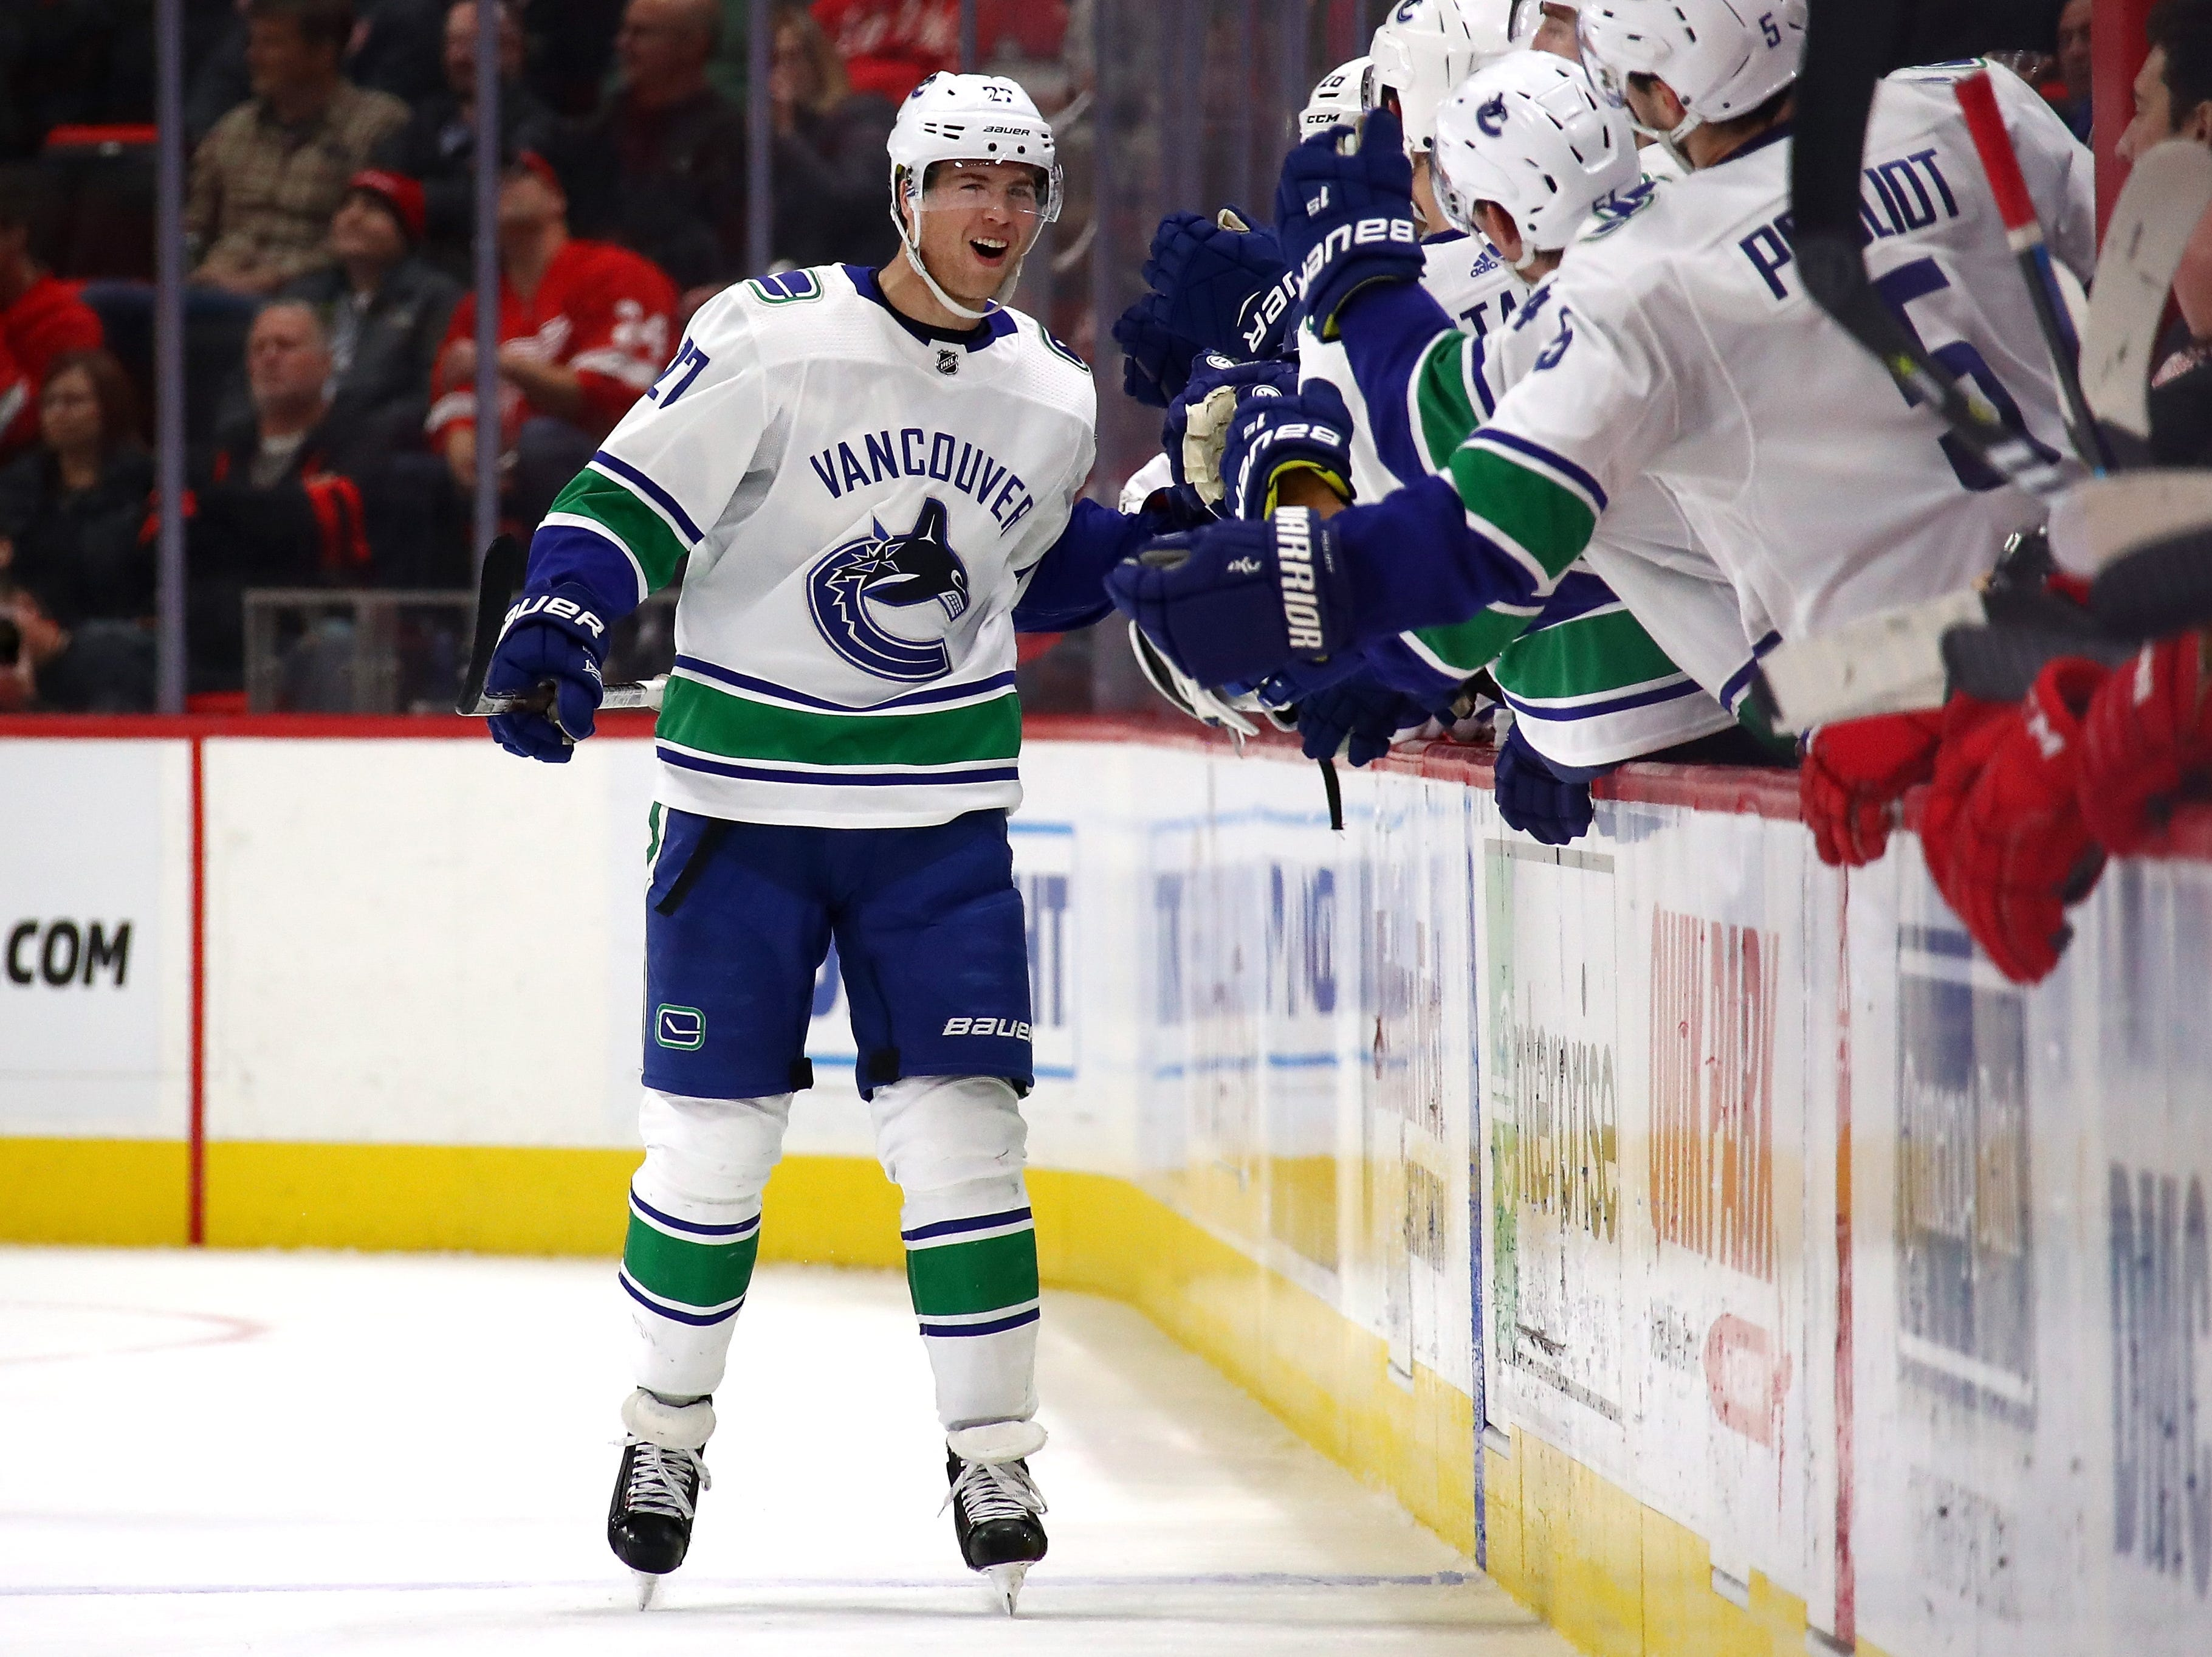 Ben Hutton (27) of the Vancouver Canucks celebrates his second period goal with teammates while playing the Detroit Red Wings at Little Caesars Arena on November 06, 2018 in Detroit, Michigan.